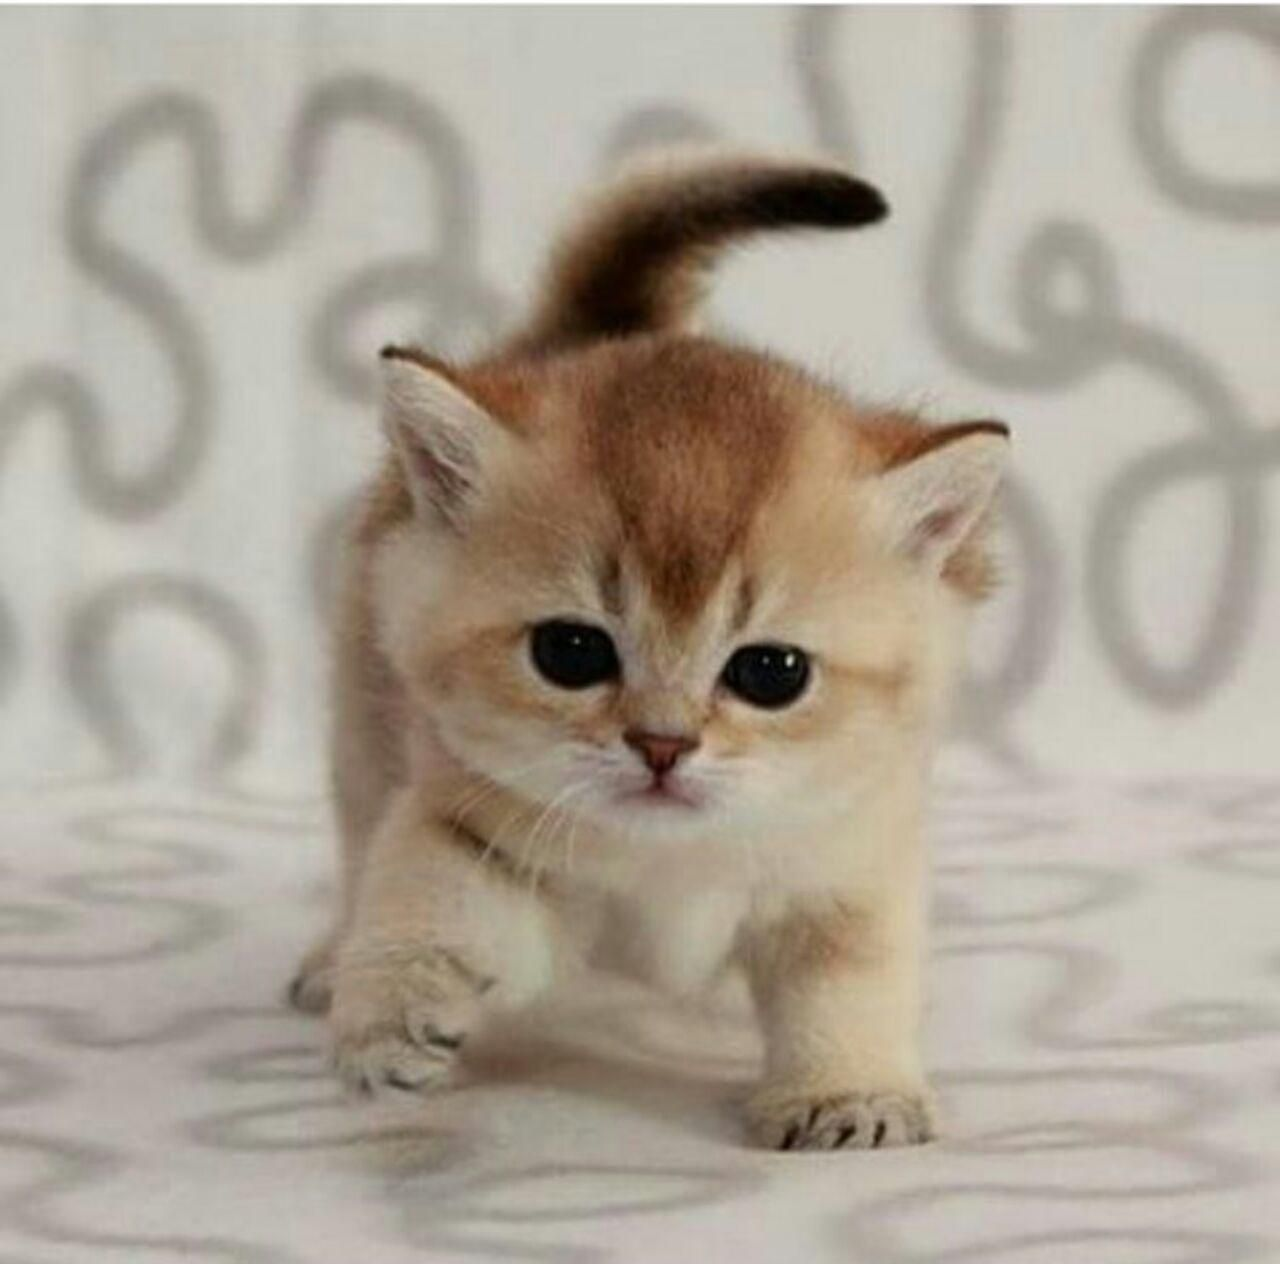 Hiya Pin Pal You Found Us Yay We Follow Followers We Love Cats Couture Comedy And You Please Com Cute Baby Animals Kittens Cutest Cute Cats And Kittens